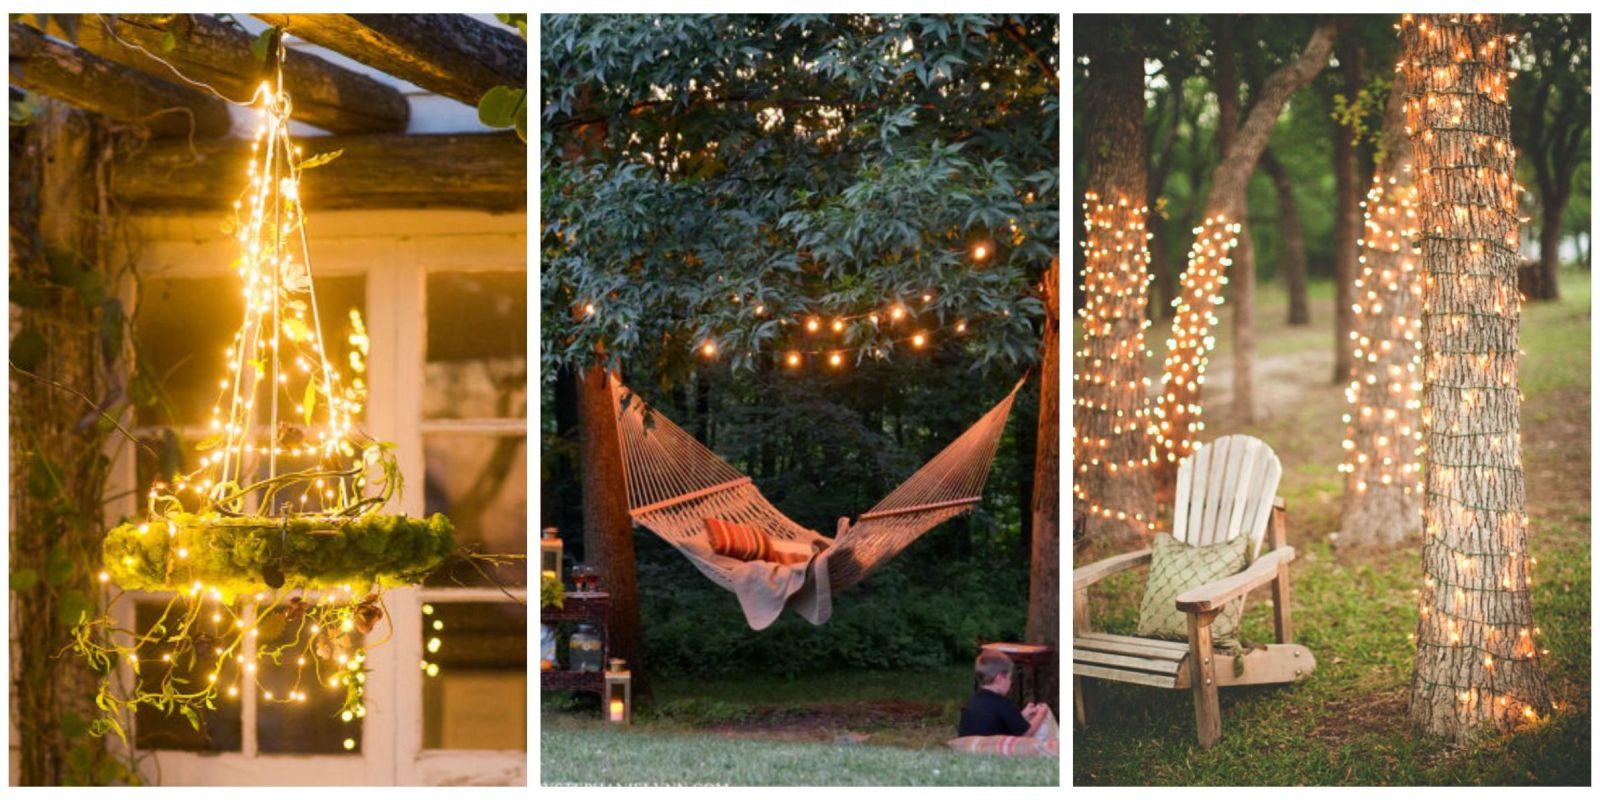 How To Hang String Lights In A Backyard : 18 Backyard Lighting Ideas - How to Hang Outdoor String Lights